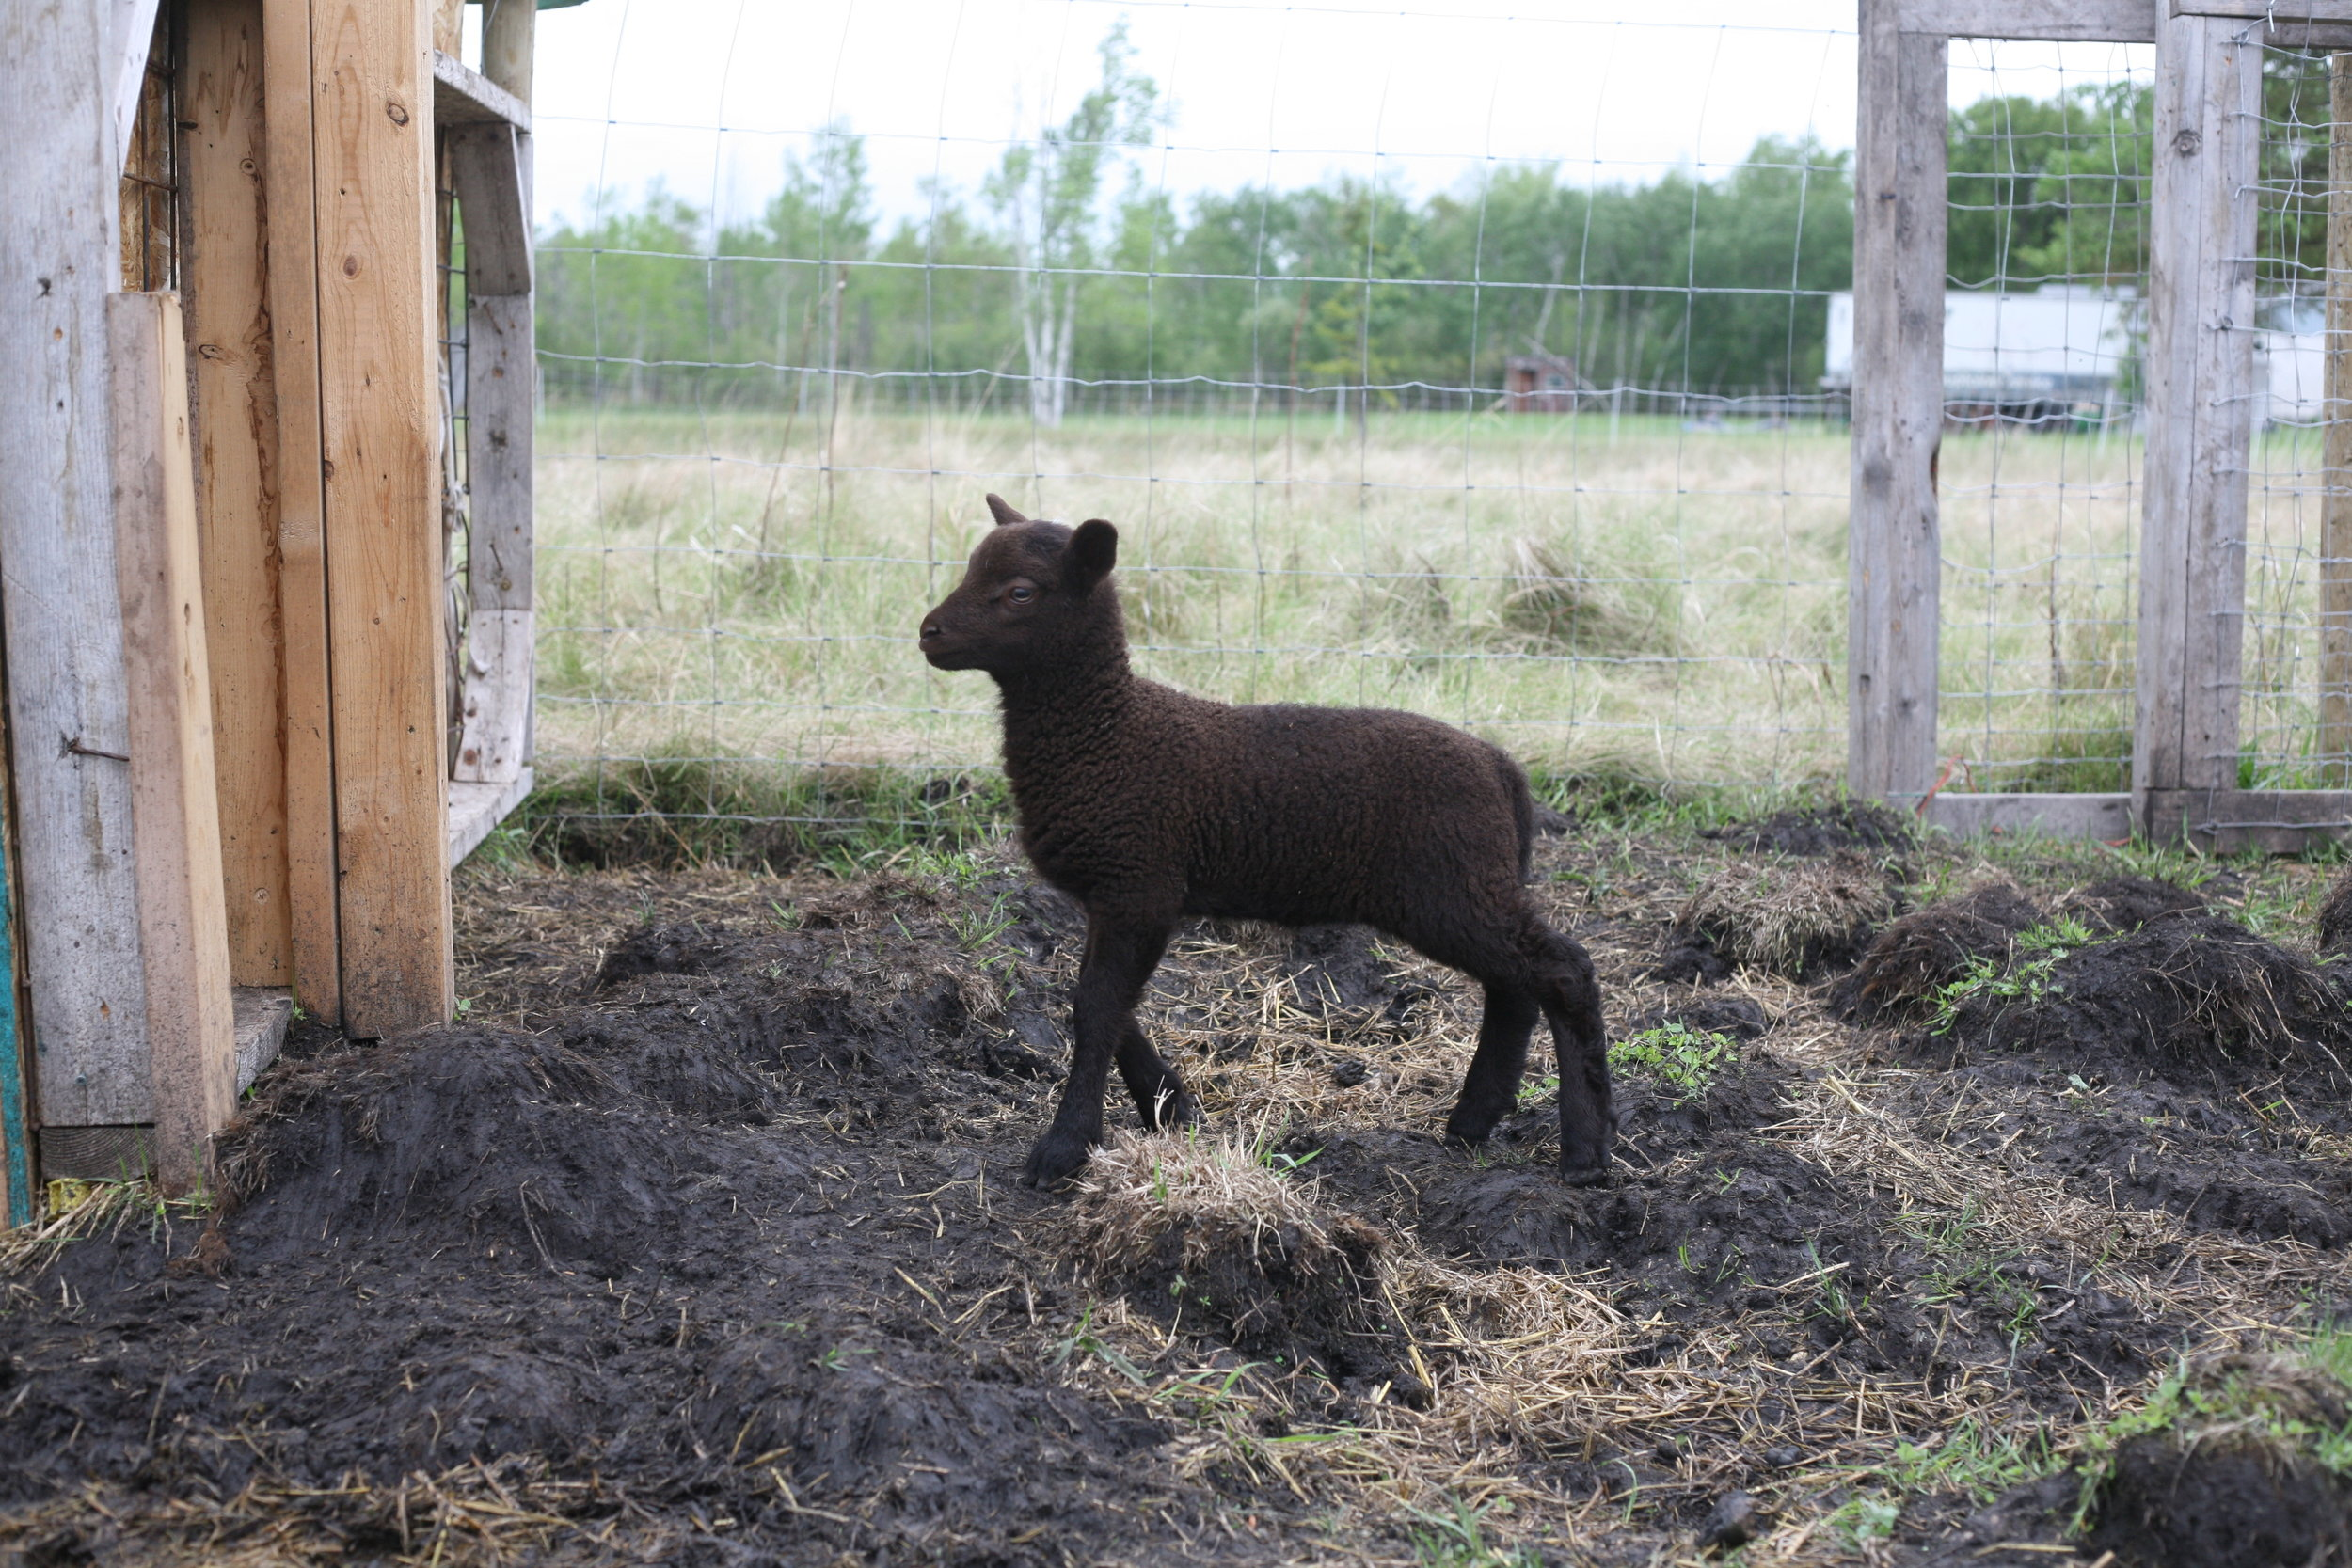 This ewe lamb was born on May 19, 2018 in the middle of a huge rain storm in the middle of the night she weighed 2.5kg. Her mother is Cairo and the sire is Muddy, both are purebred shetland sheep. She has a twin sister. She is very dark with a few white hairs on the top of her head. She loves to play with the other lambs, but isn't very adventurous on her own yet. Her fleece is a beautiful dark brown.